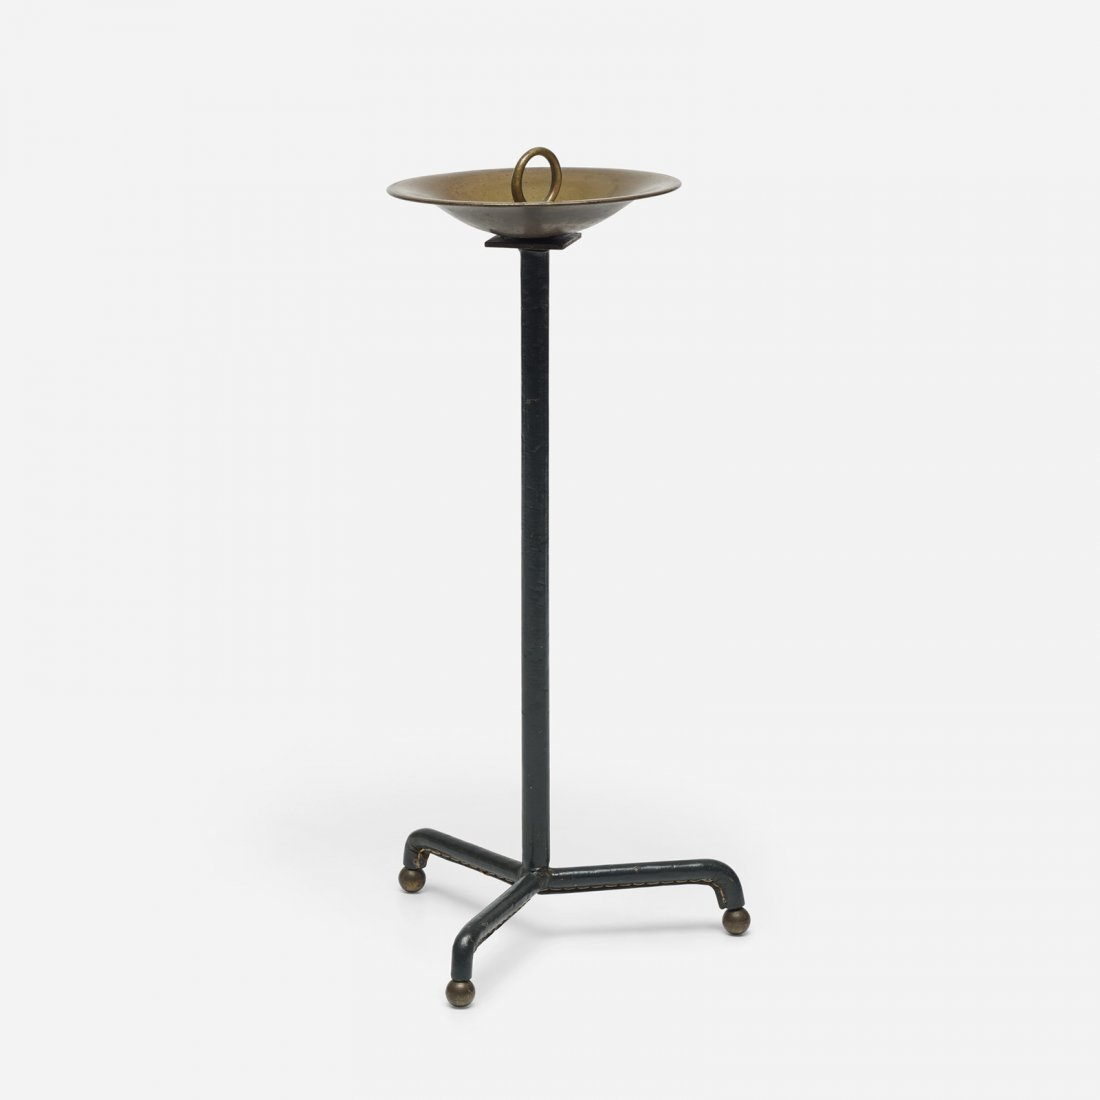 Jacques Adnet, attribution, ashtray